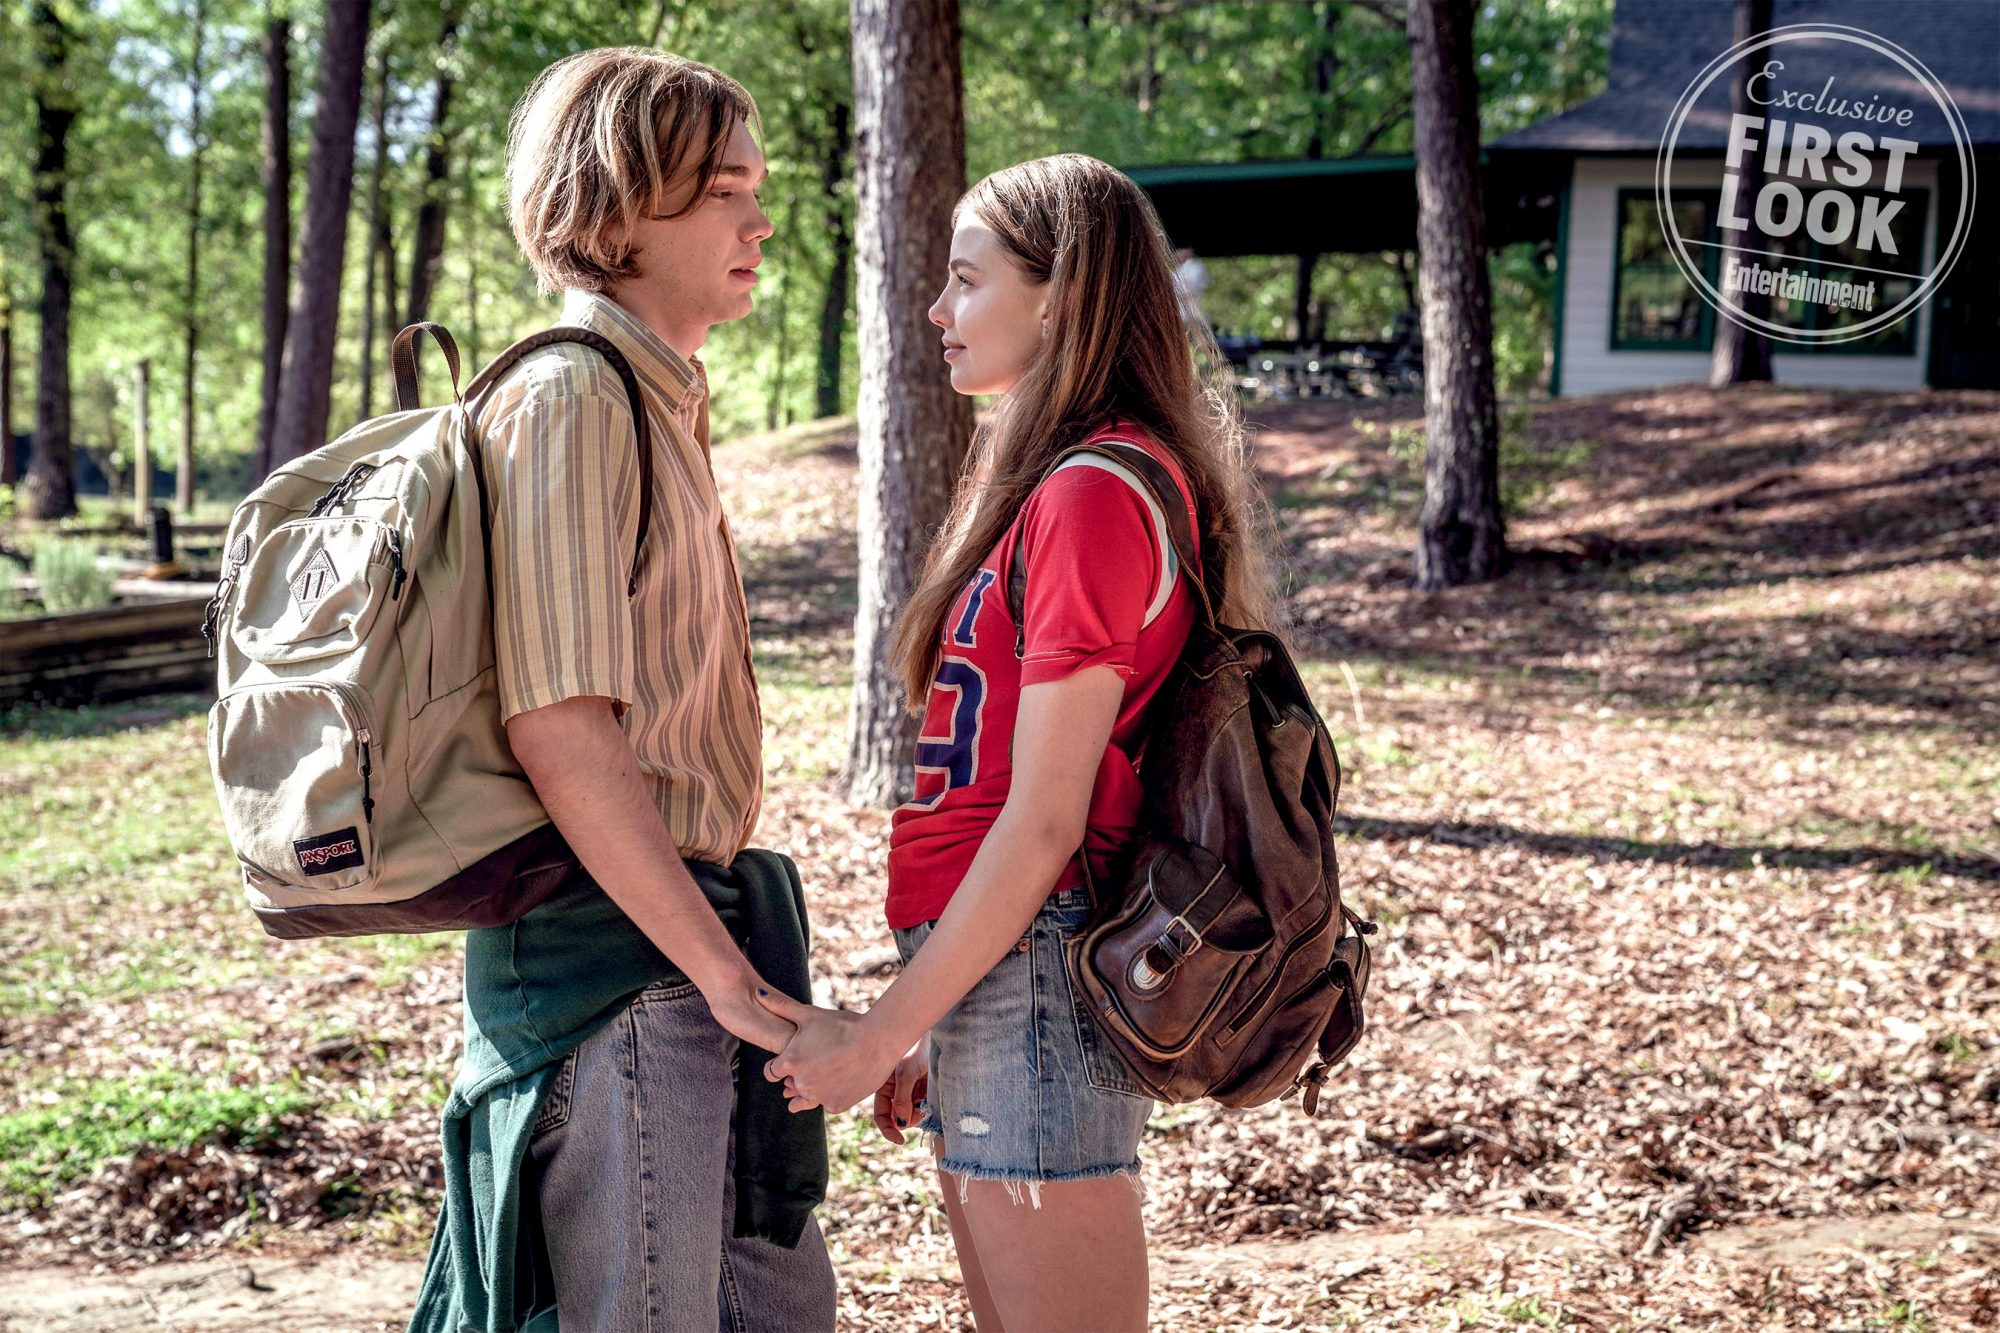 LOOKING FOR ALASKA -- Episode 101 -- Miles Halter, seeking his Great Perhaps, enrolls at Culver Creek Academy. On his first day, he gets a new nickname, a best friend, some enemies, and meets the wild, unpredictable, and enigmatic girl who lives down the hall: Alaska Young. Miles (Charlie Plummer) and Alaska (Kristine Froseth), shown. (Photo by: Alfonso Bresciani)